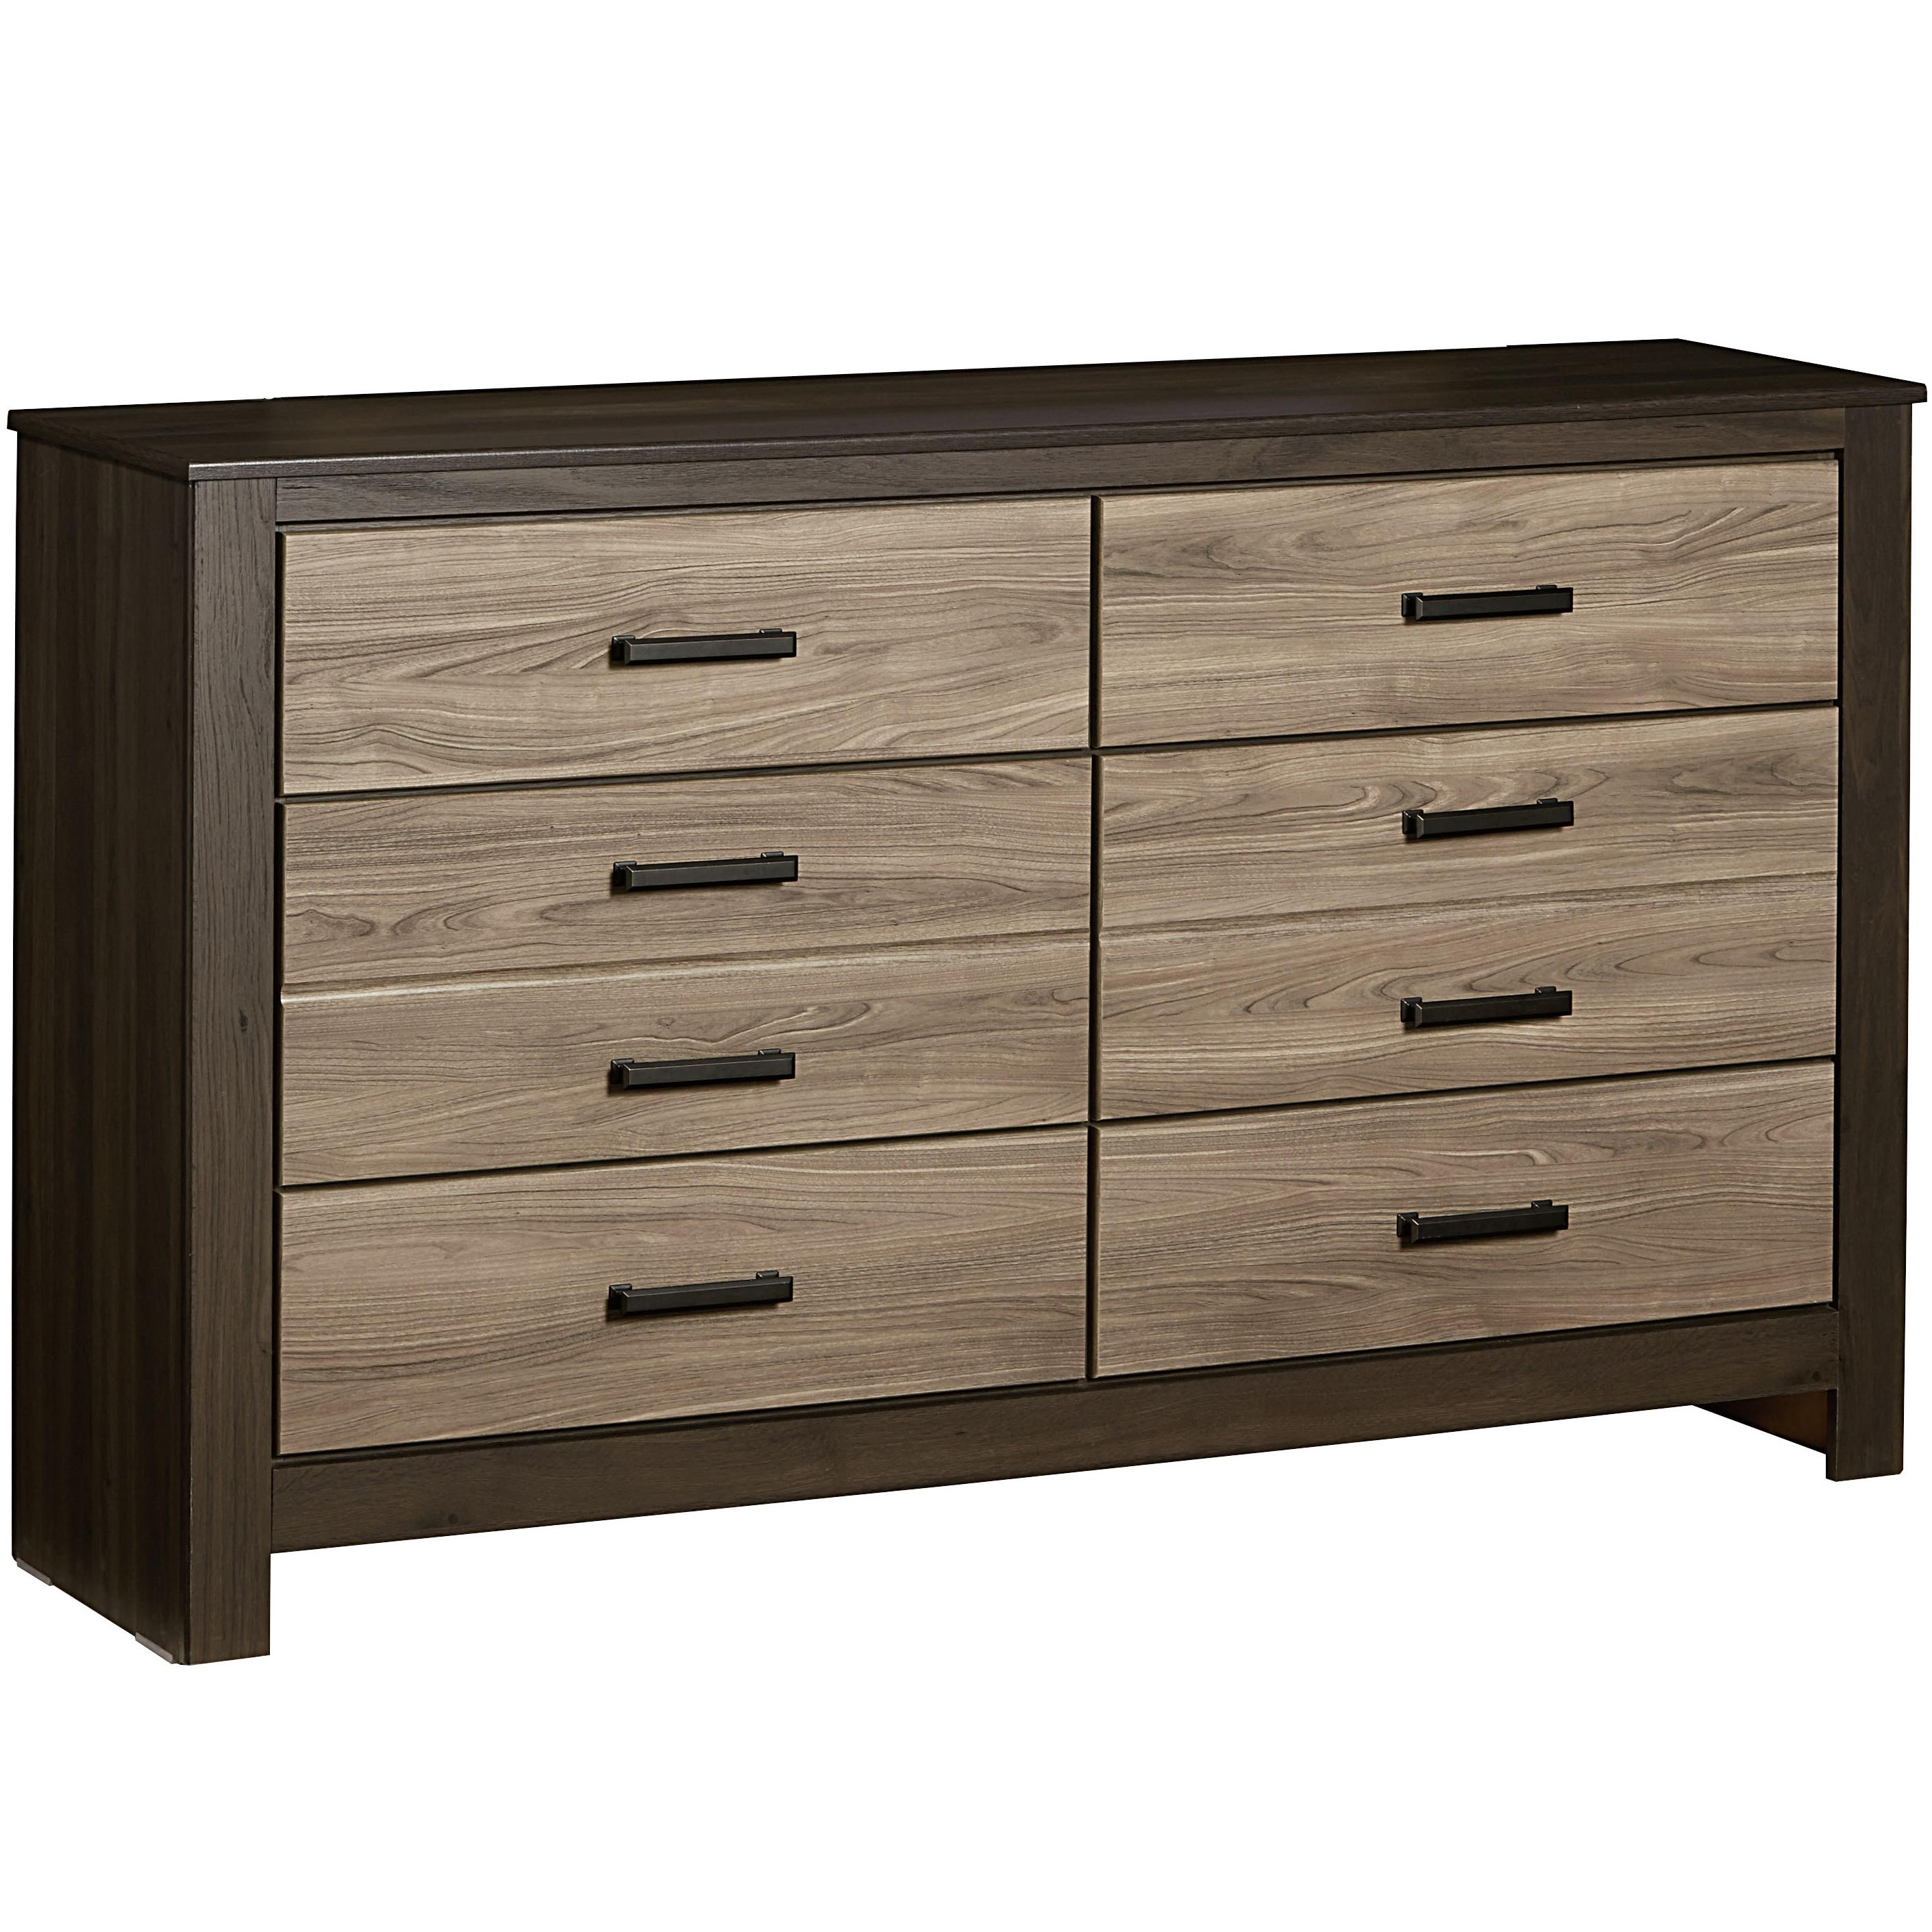 Standard Furniture Freemont Dresser - Item Number: 69759